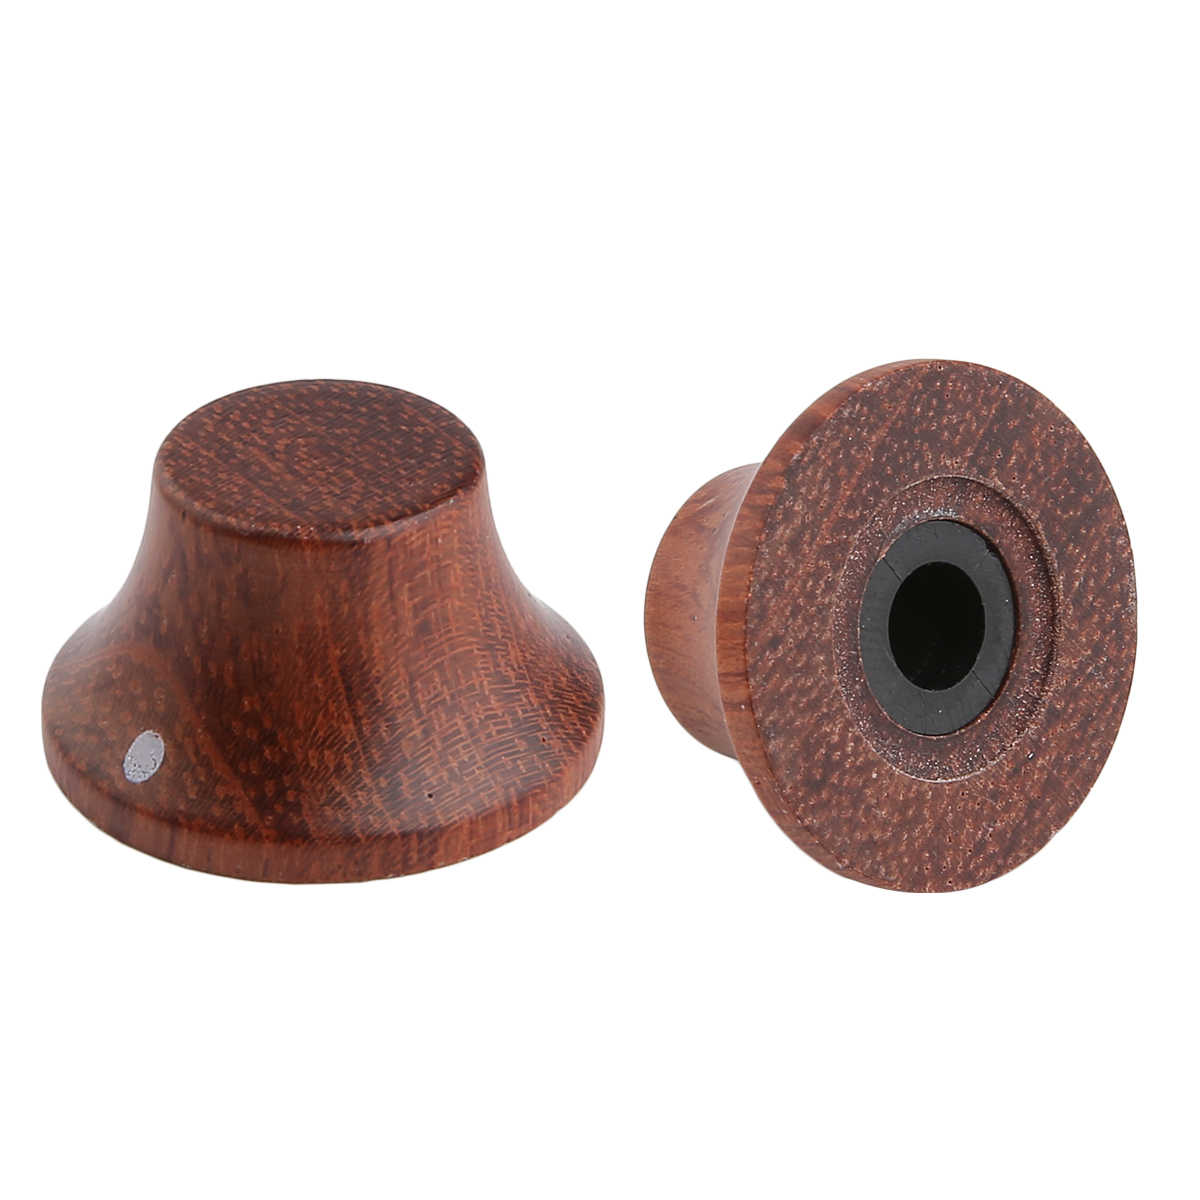 KAISH  Wood Knobs LP/Strat Style Bell Knobs Guitar Bass Top Hat Wood Knob with Indicator Dot 5 Different Wood